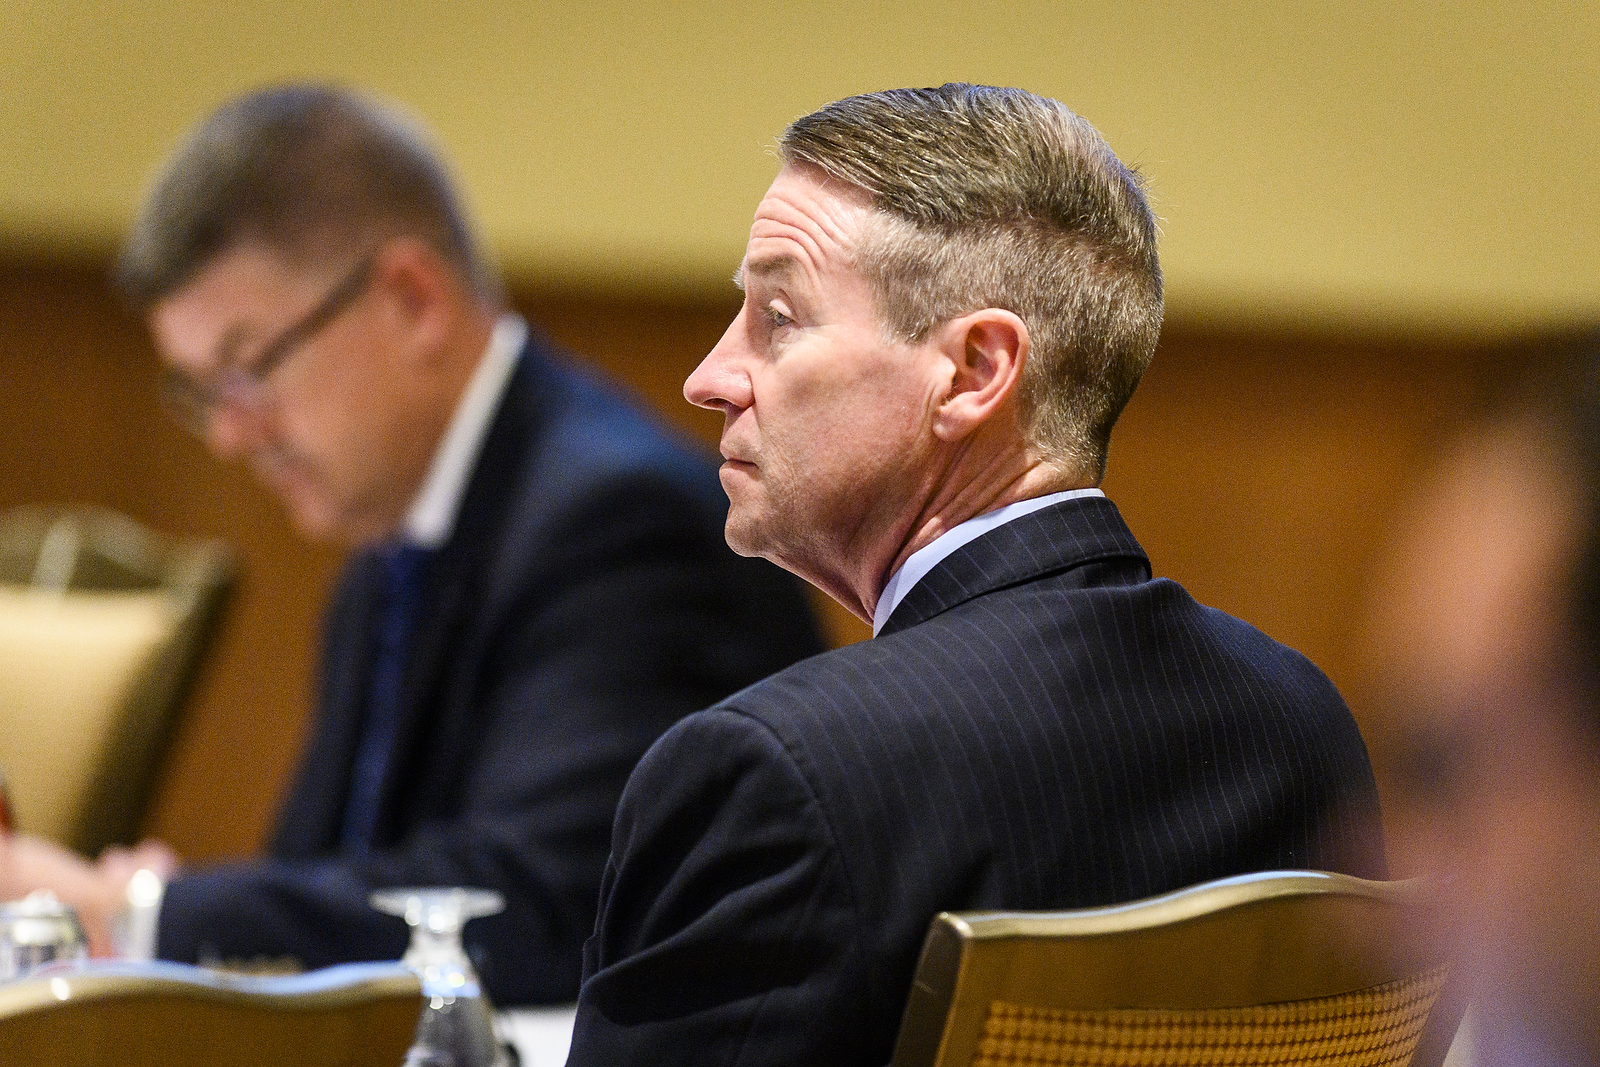 UW System Regent Mike Jones listens to a speaker at the UW System Board of Regents meeting hosted at Union South at the University of Wisconsin-Madison on Feb. 7, 2019. (Photo by Bryce Richter /UW-Madison)